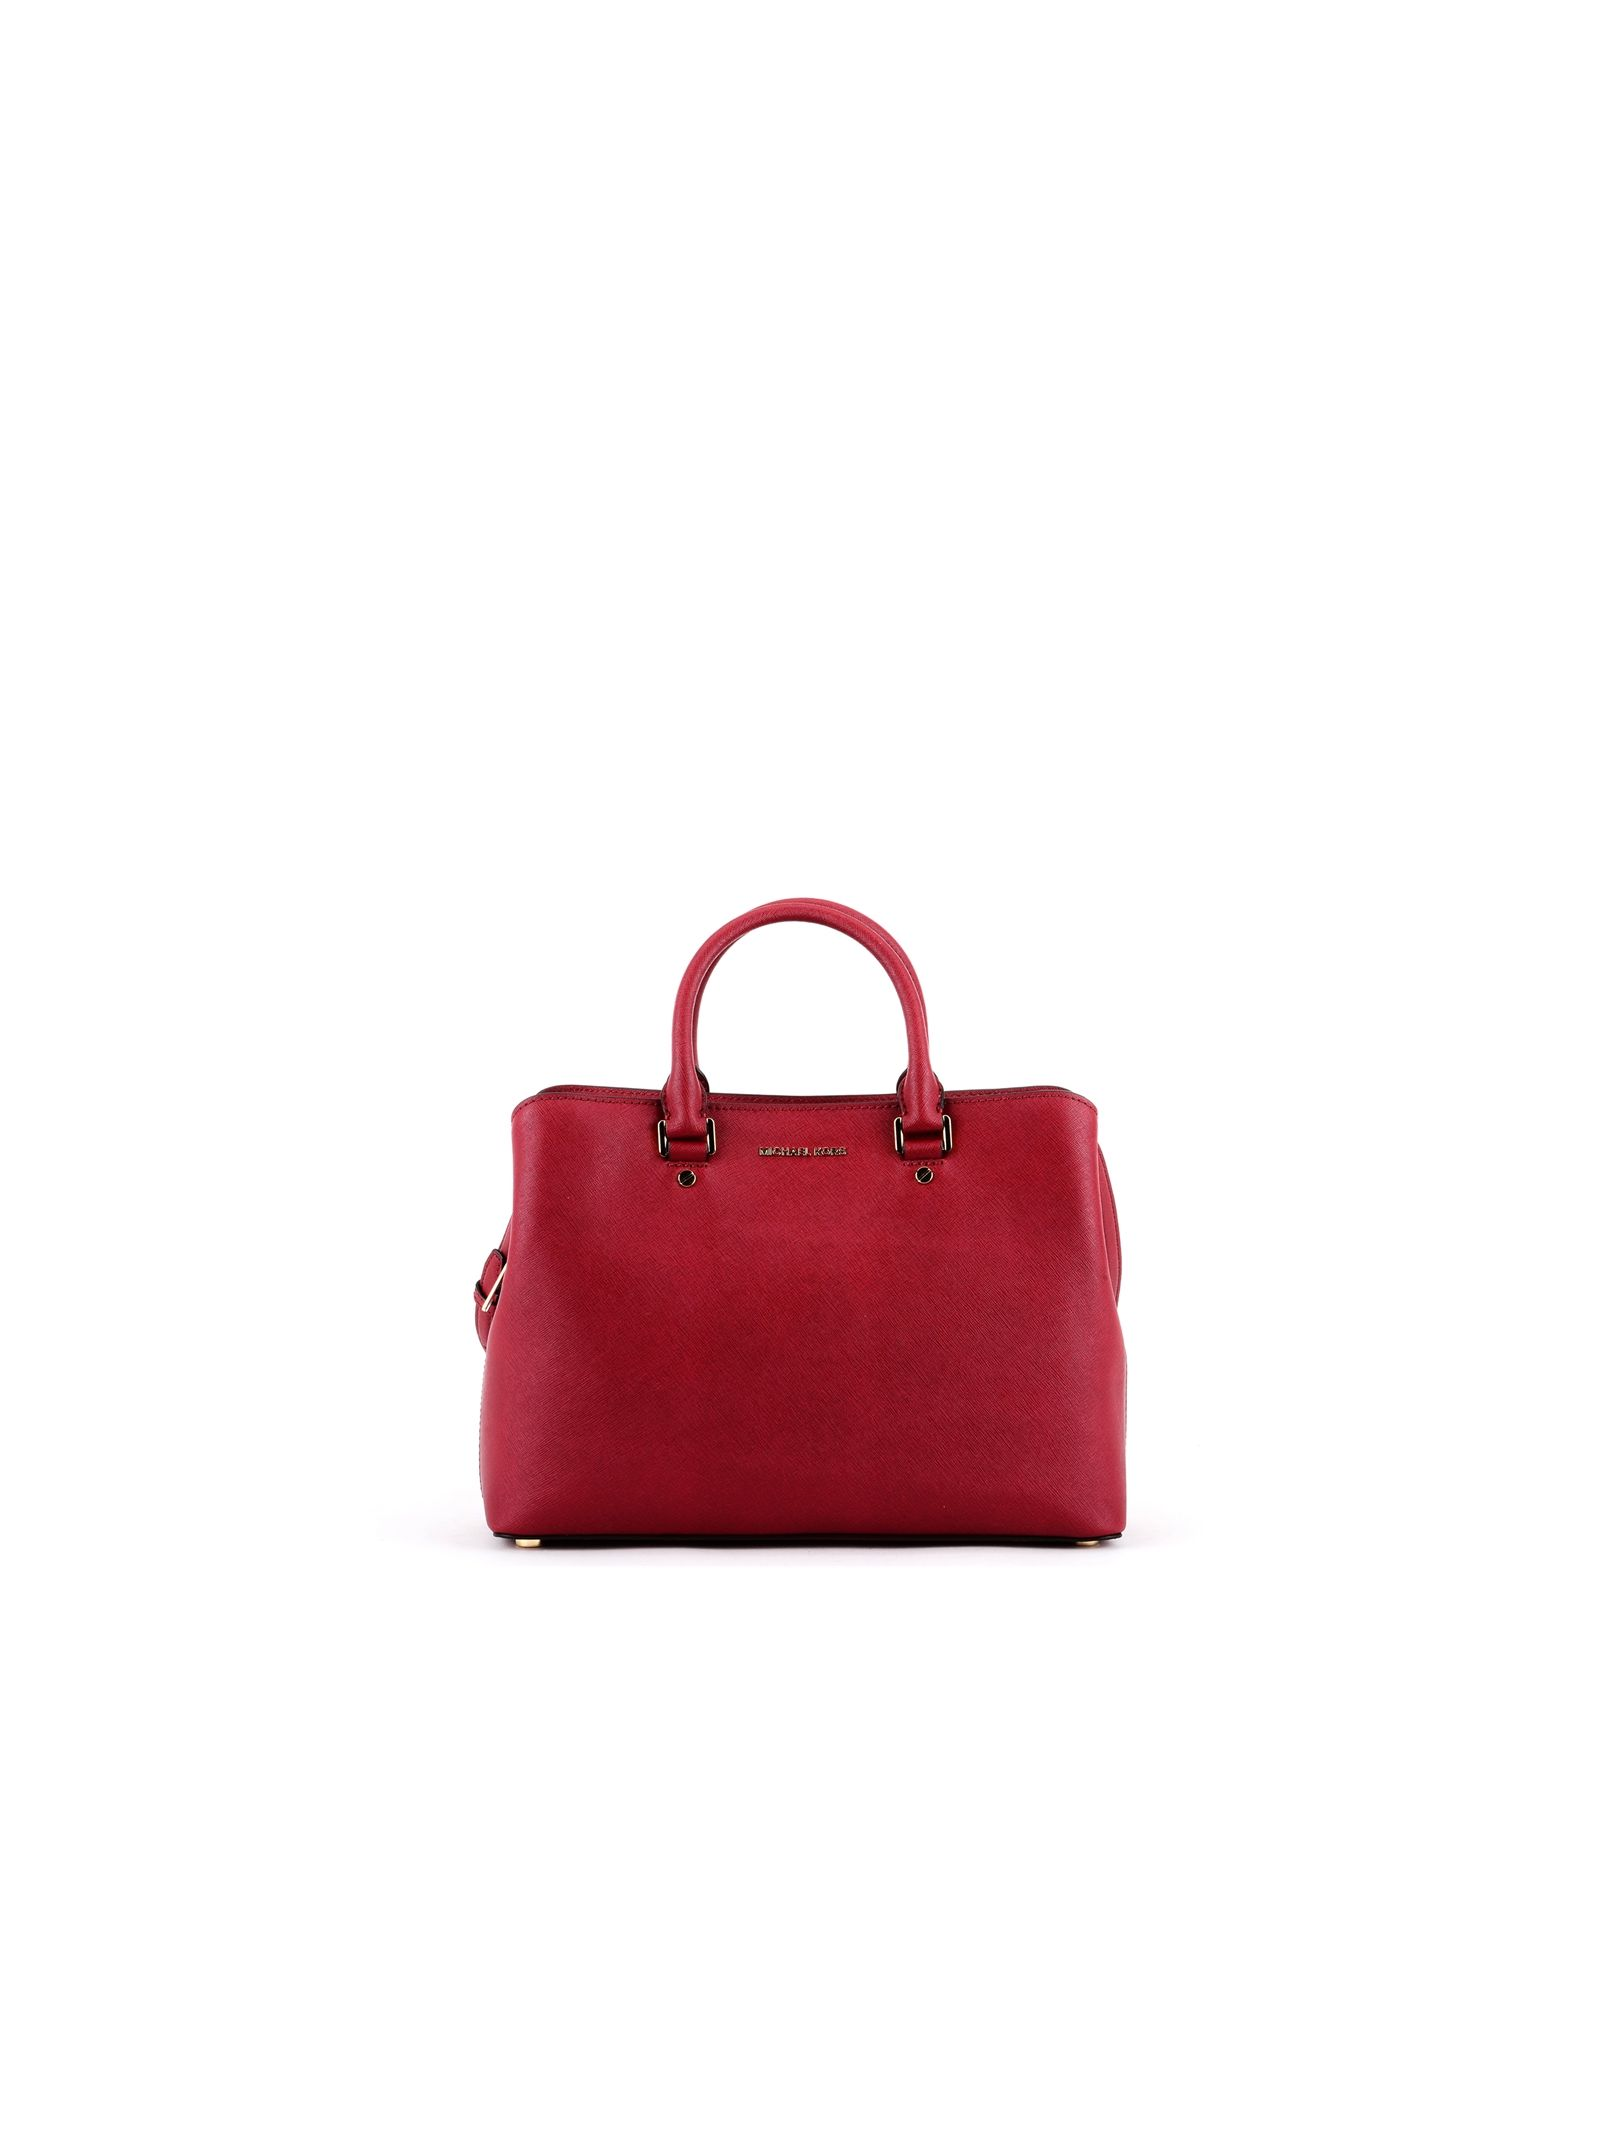 michael kors female cherry savannah large satchel